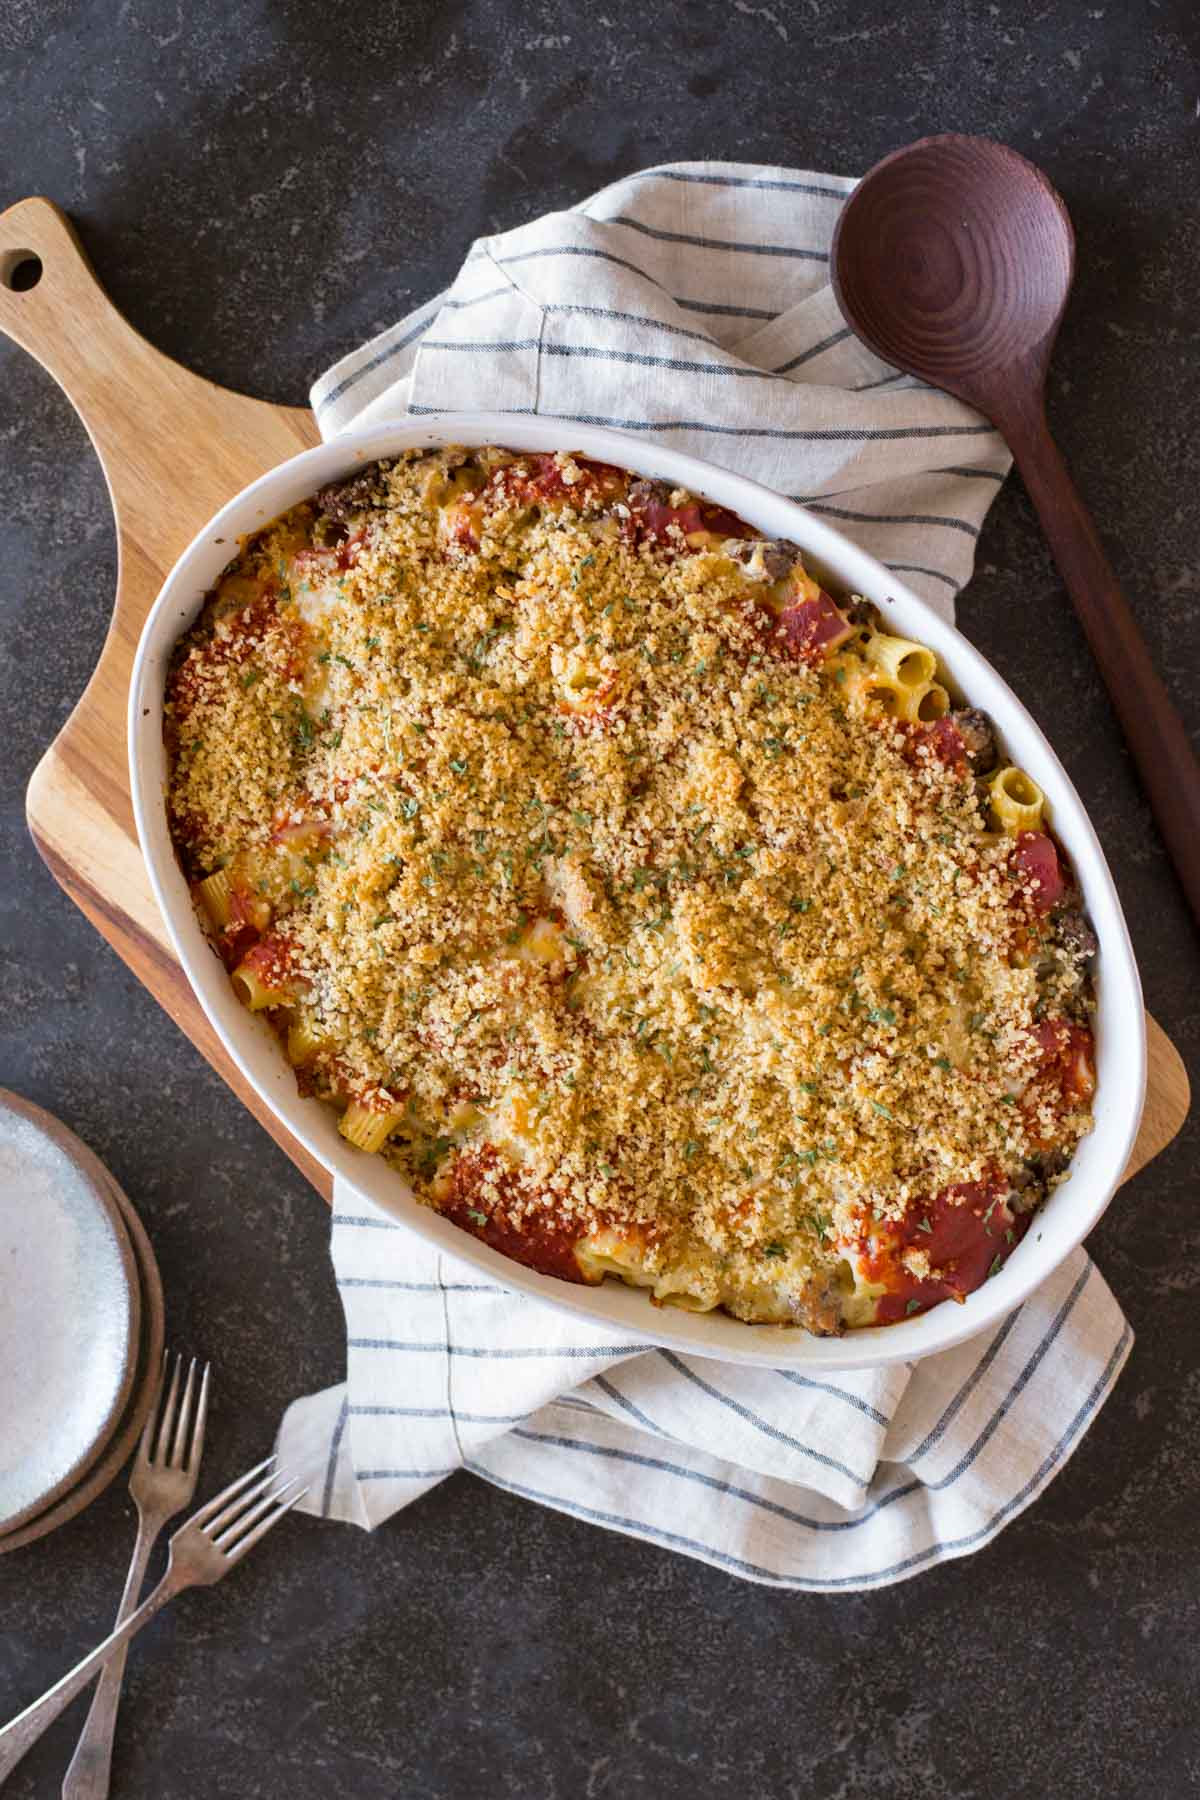 Cheesy Tomato Alfredo Pasta Bake in a baking dish, with a serving spoon, plates and forks beside it.